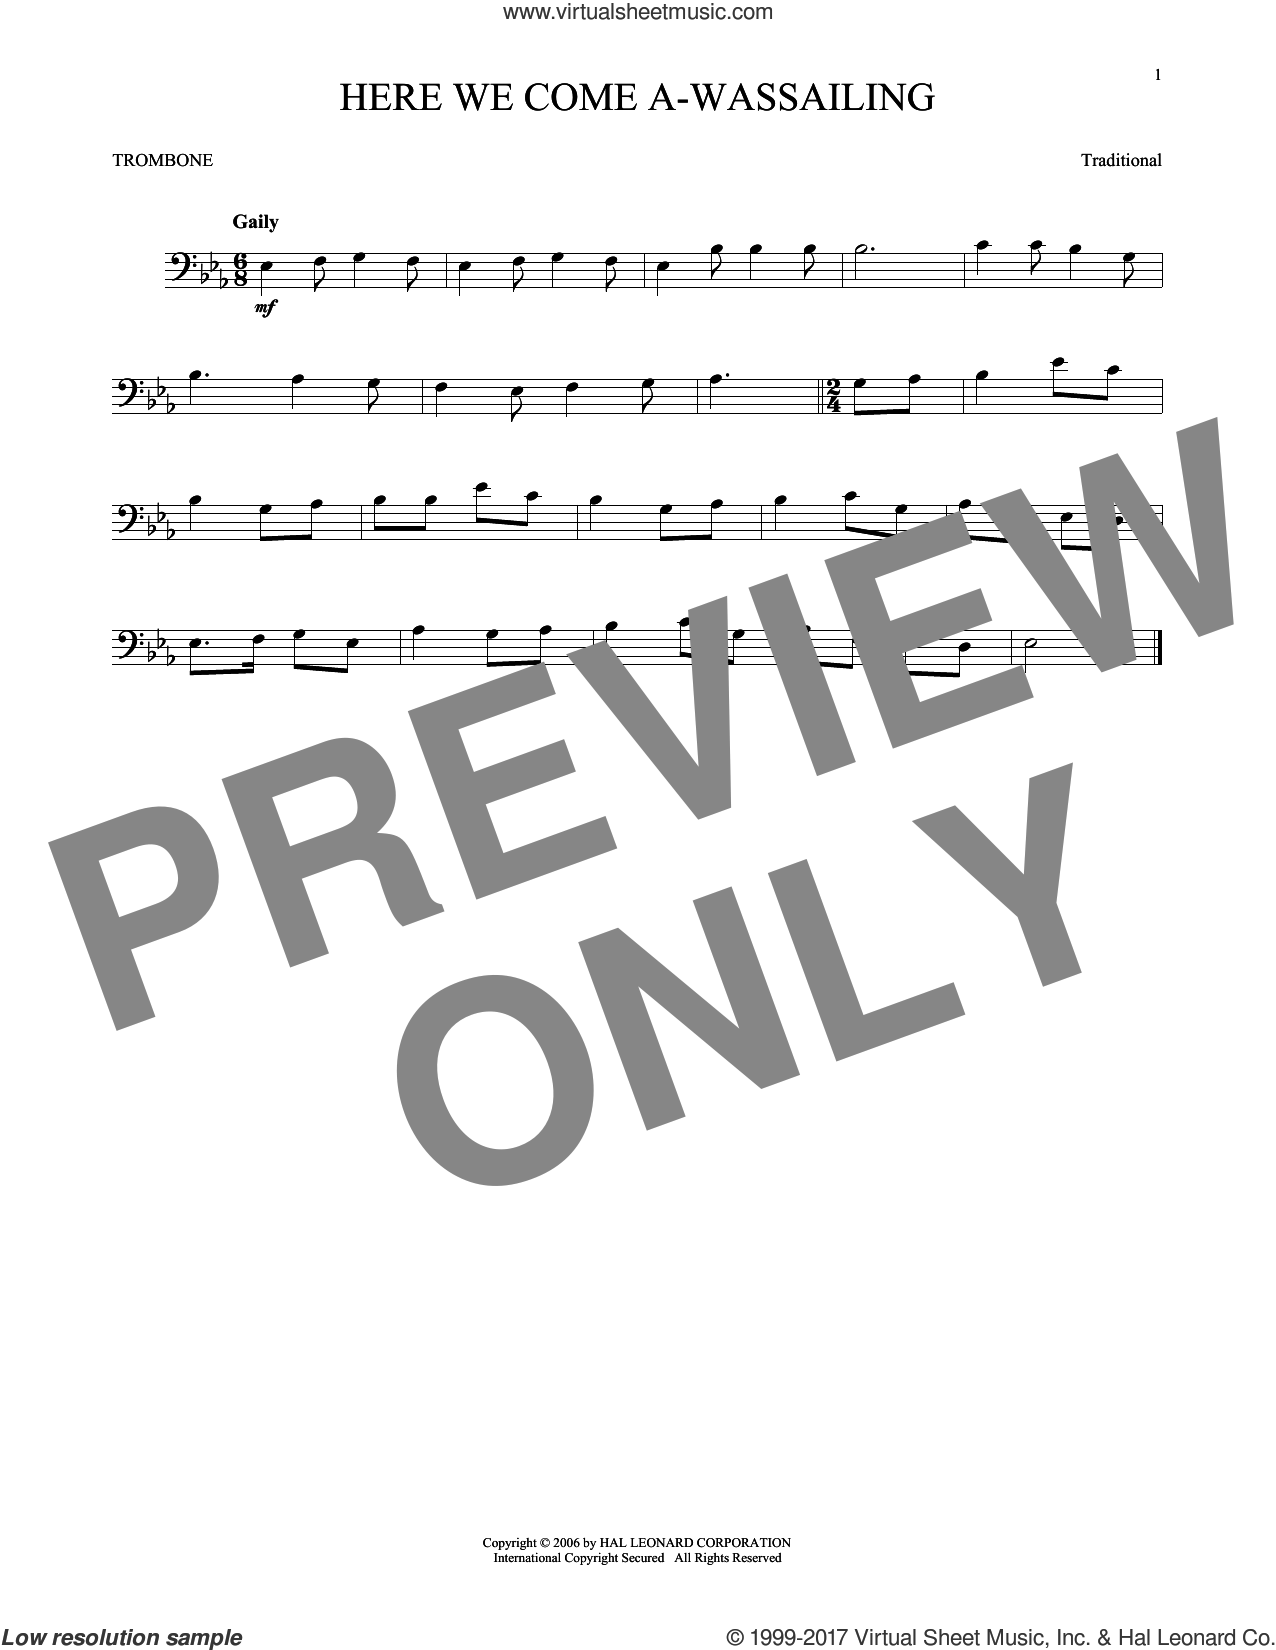 Here We Come A-Wassailing sheet music for trombone solo, intermediate. Score Image Preview.